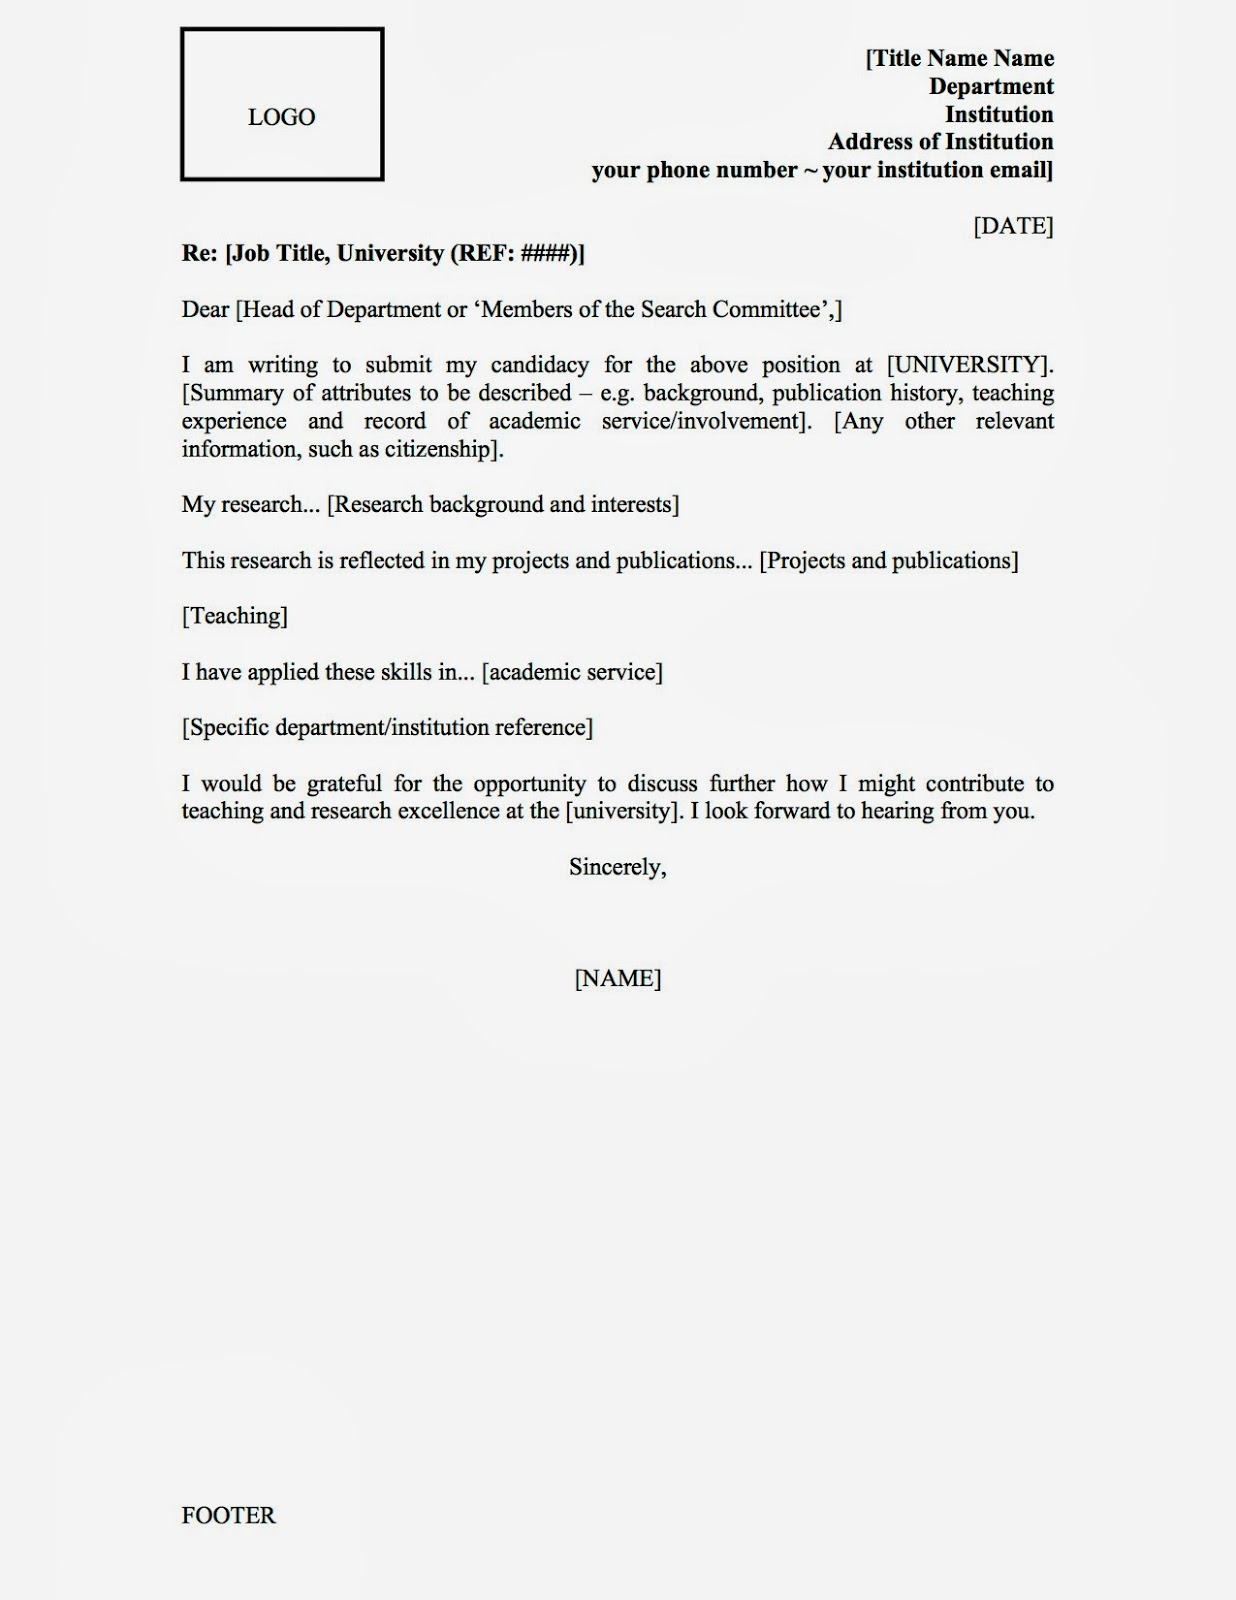 Salutation cover letter uk